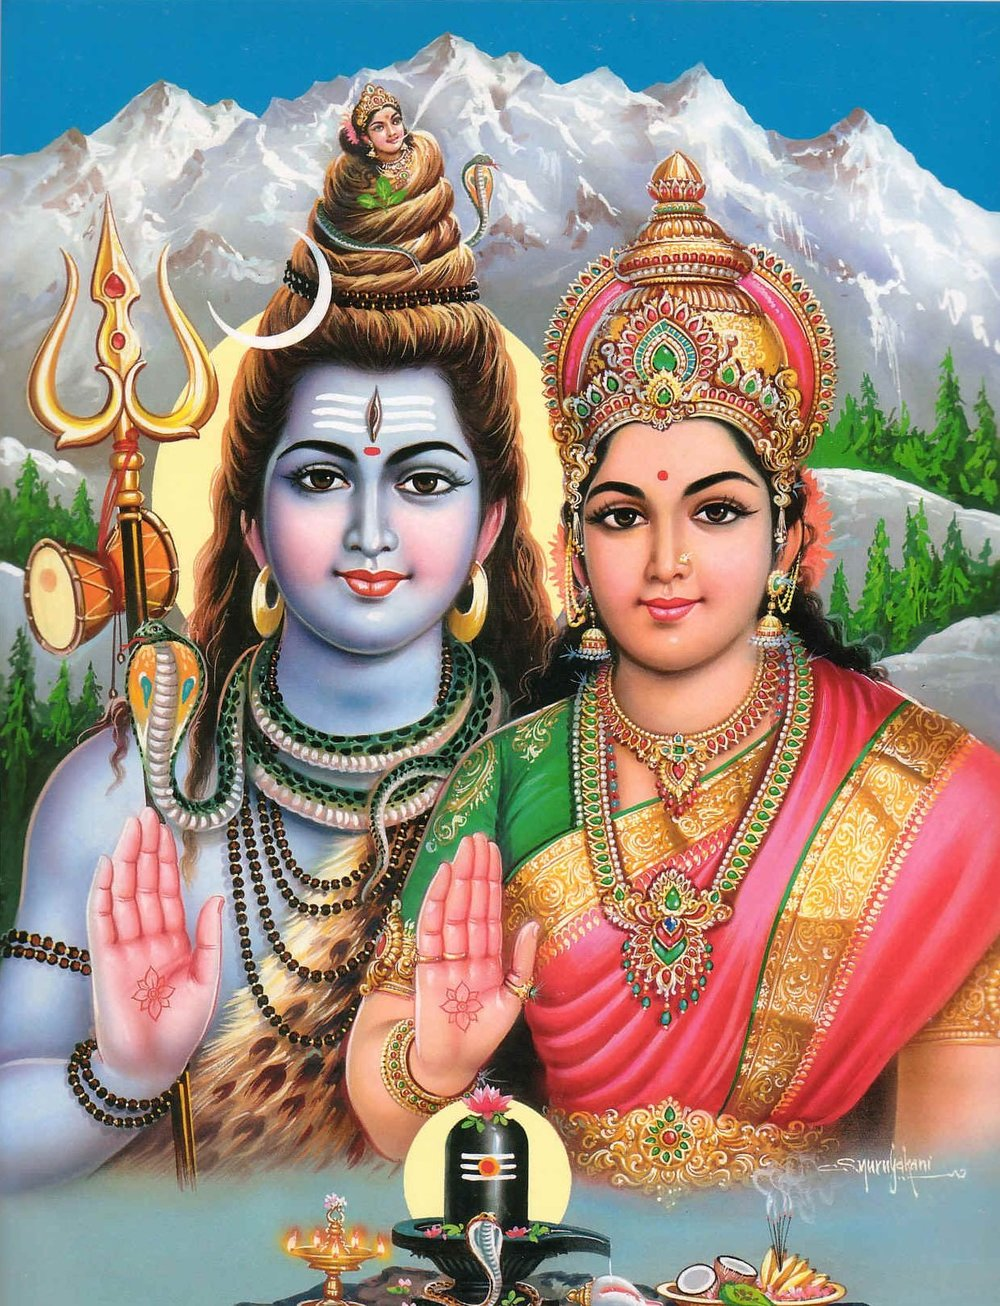 Shiva and Parvati, the right-handed aspect of Durga Ma